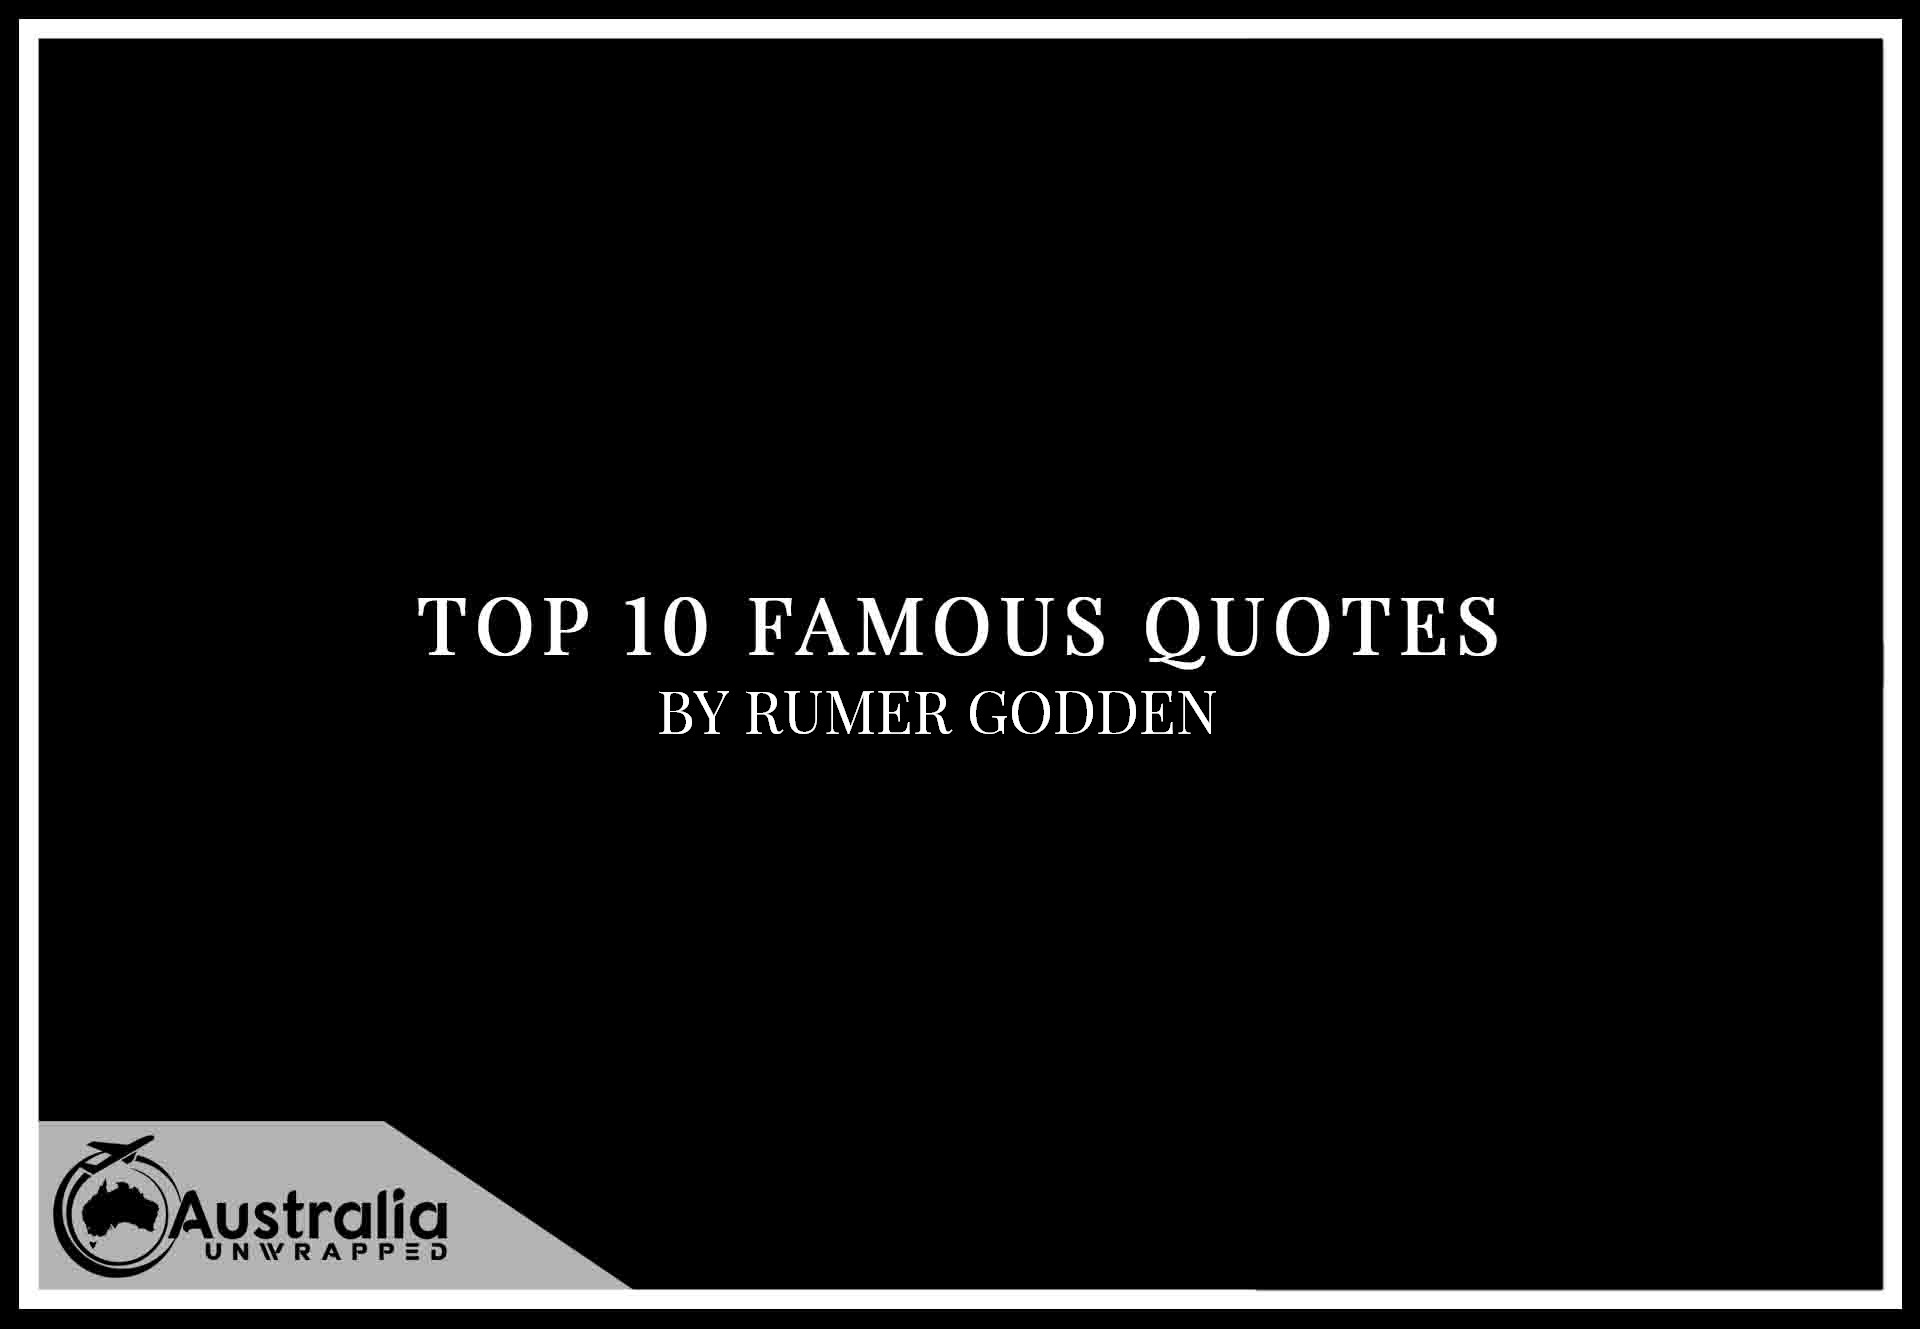 Top 10 Famous Quotes by Author Rumer Godden